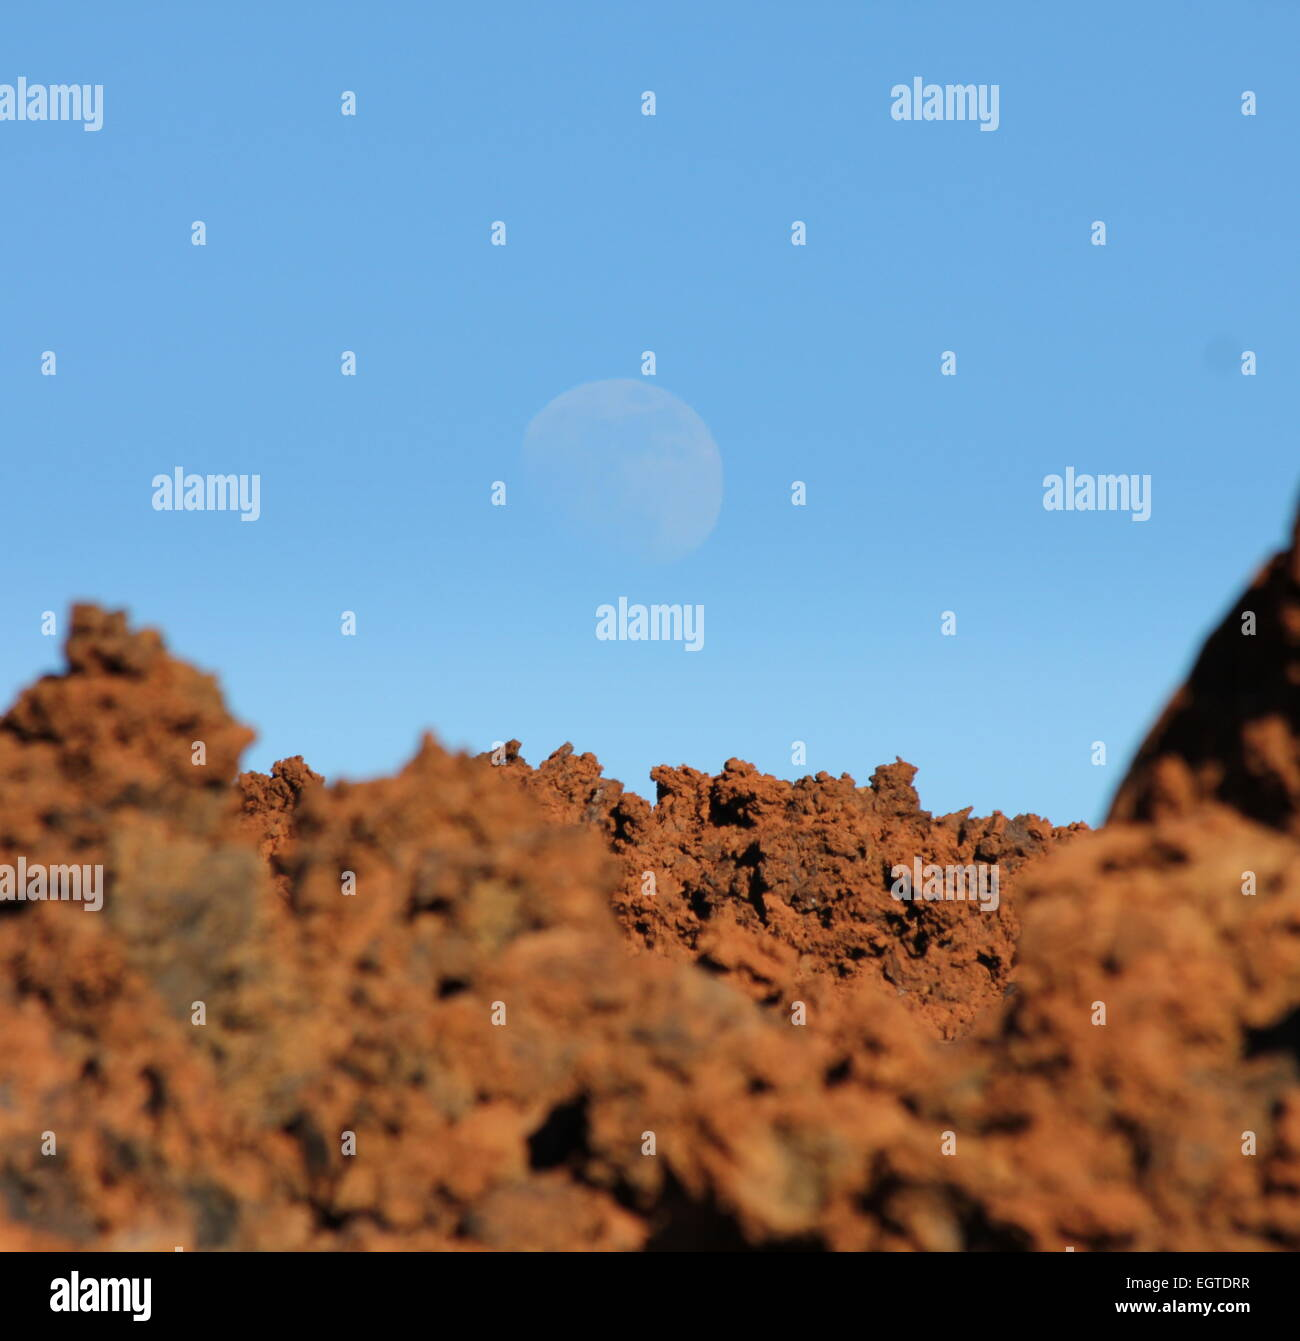 Moonrise over lava field las canadas el teide national park tenerife - Stock Image